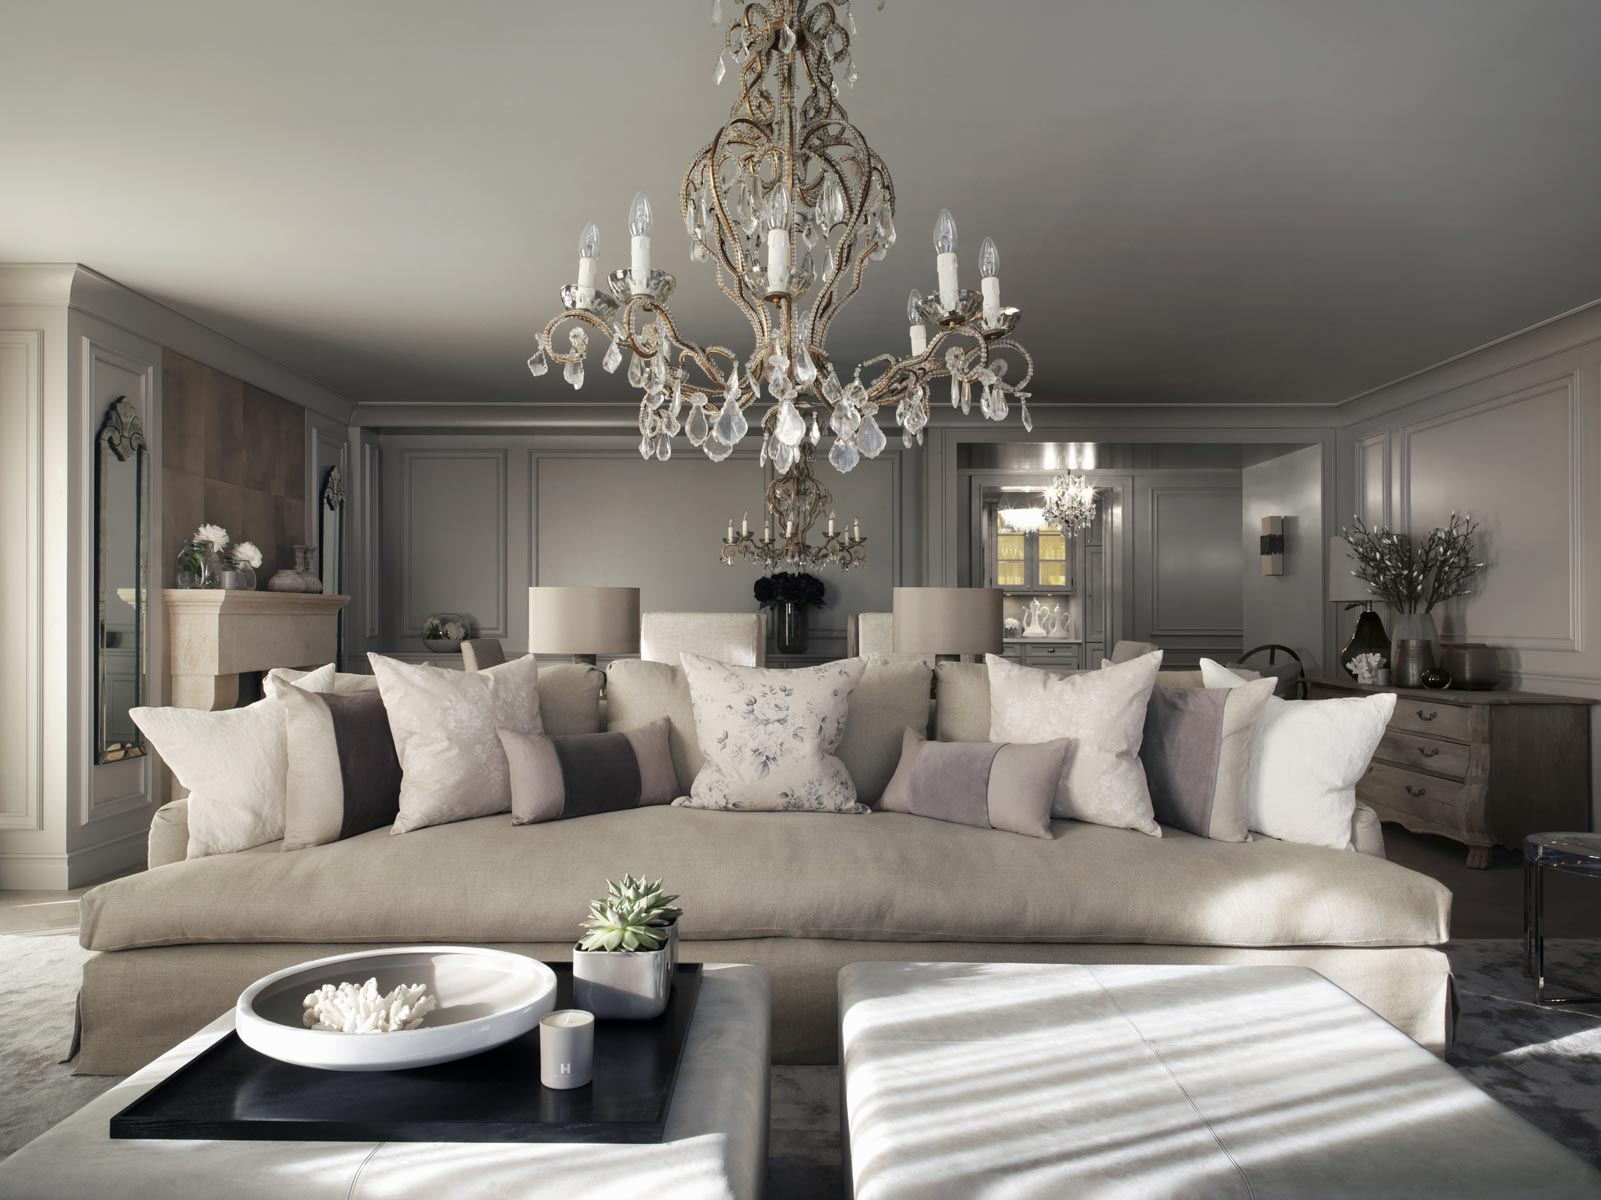 Artistic Design Chalet By Kelly Hoppen Kelly Hoppen Kelly Hoppen Designideas Chalet Kelly Hoppen Design Ideas Interior Design Ideas Living Room Colors Interior Design Ideas Living Room interior Interior Design Idea Living Room